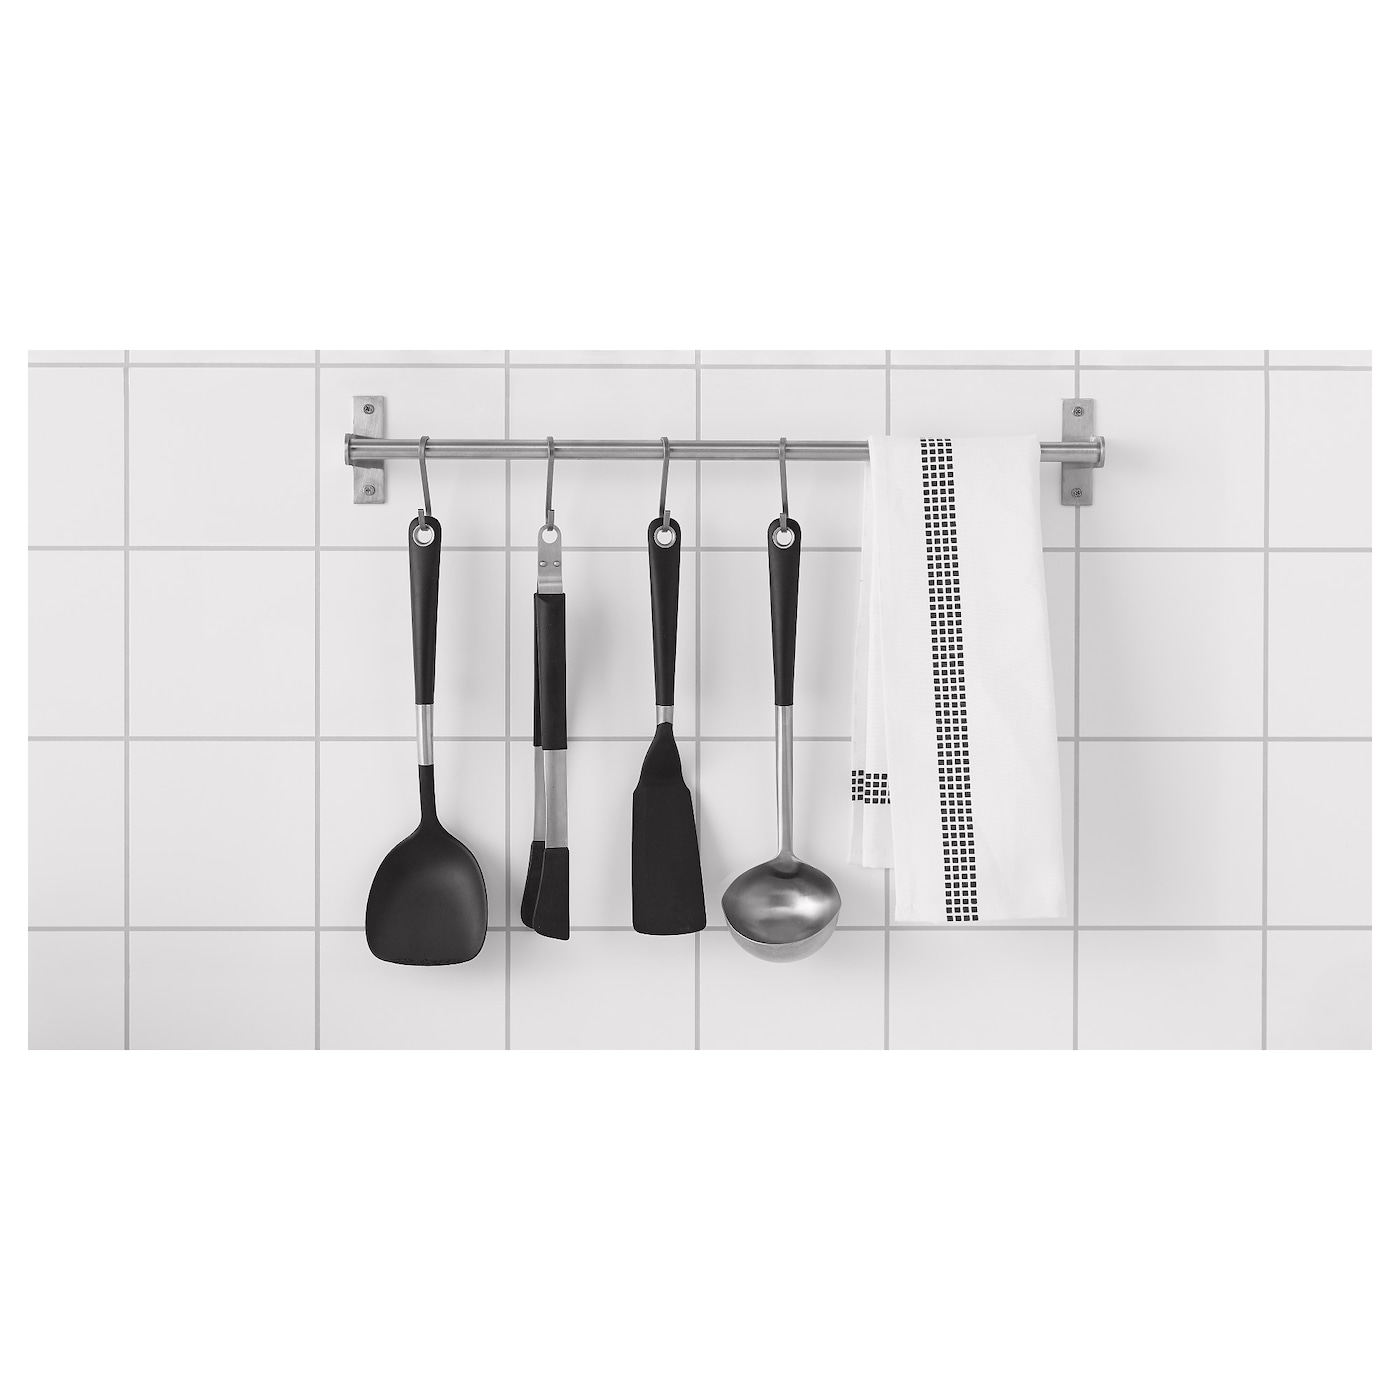 IKEA IKEA 365+ HJÄLTE wok spatula Kind to pots and pans with non-stick coating.